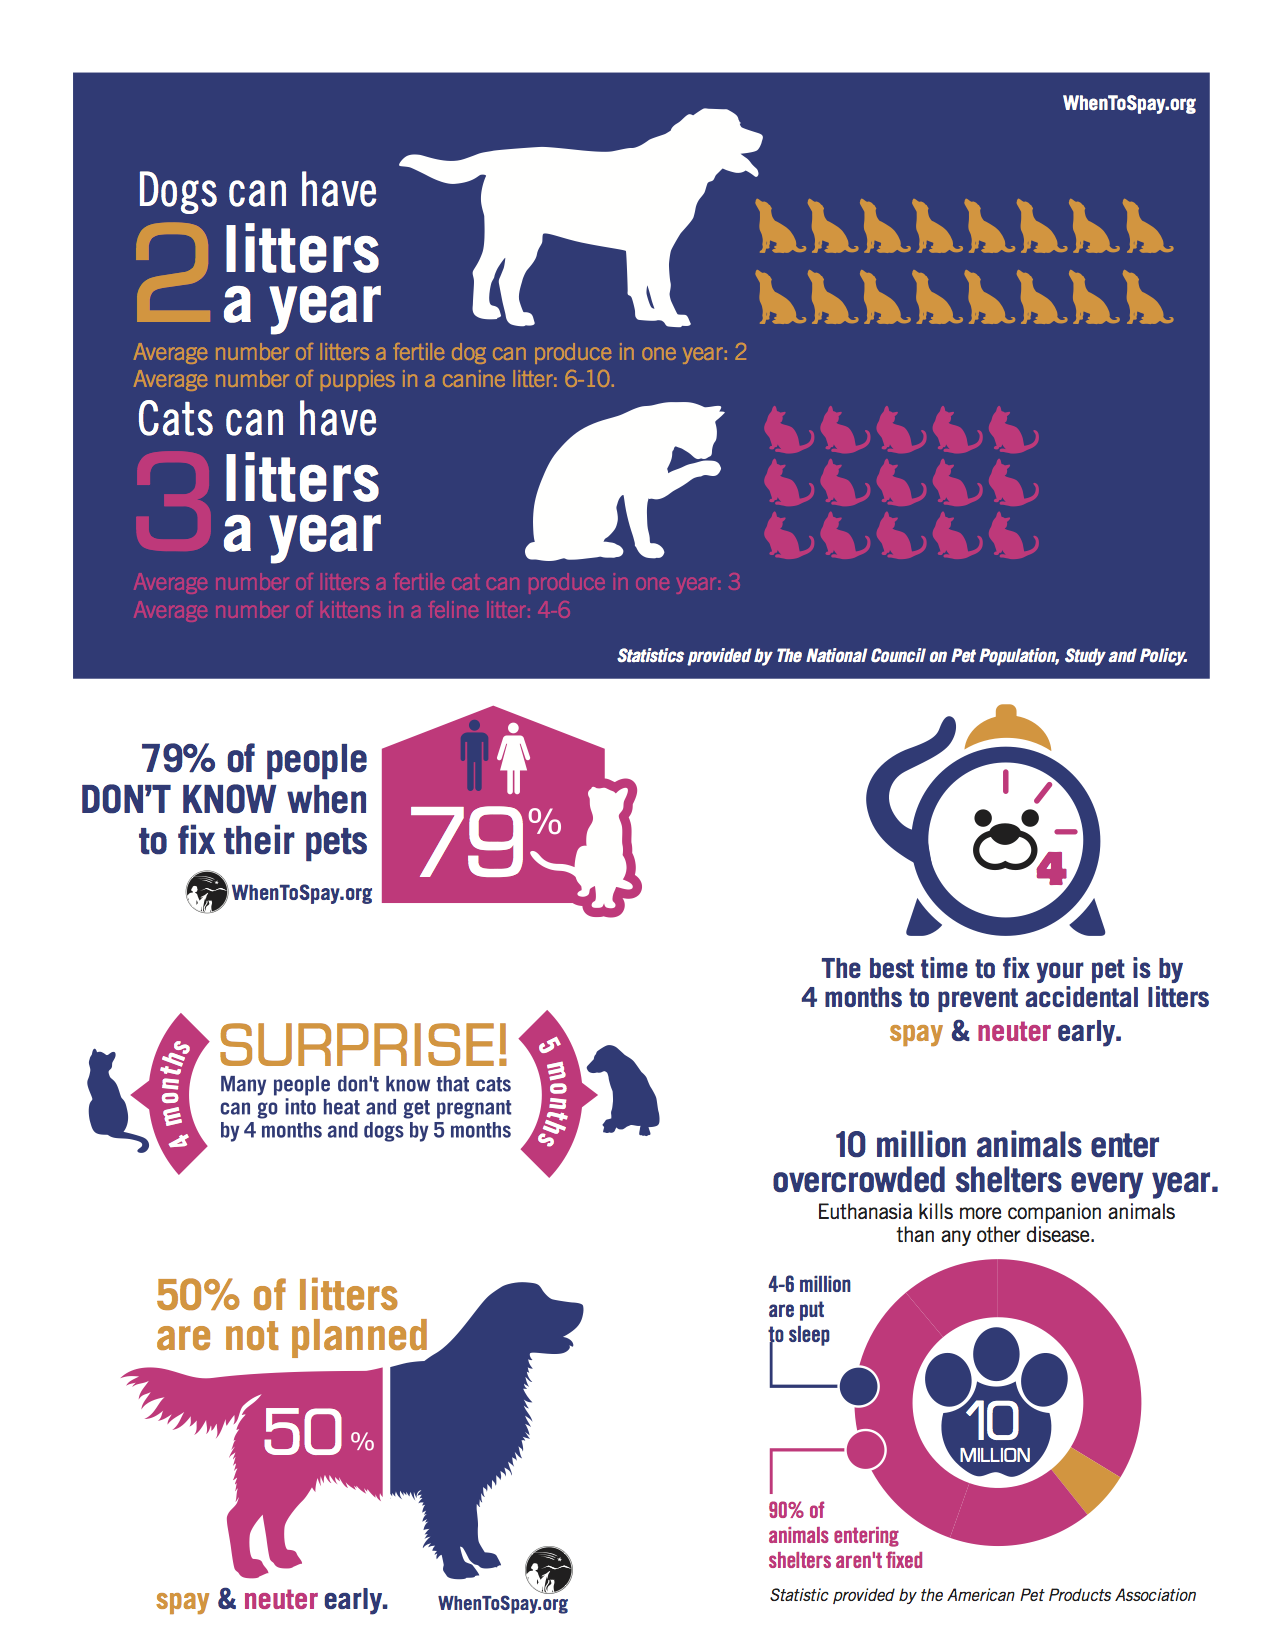 Do You Know About Our Spay/Neuter Assistance Voucher